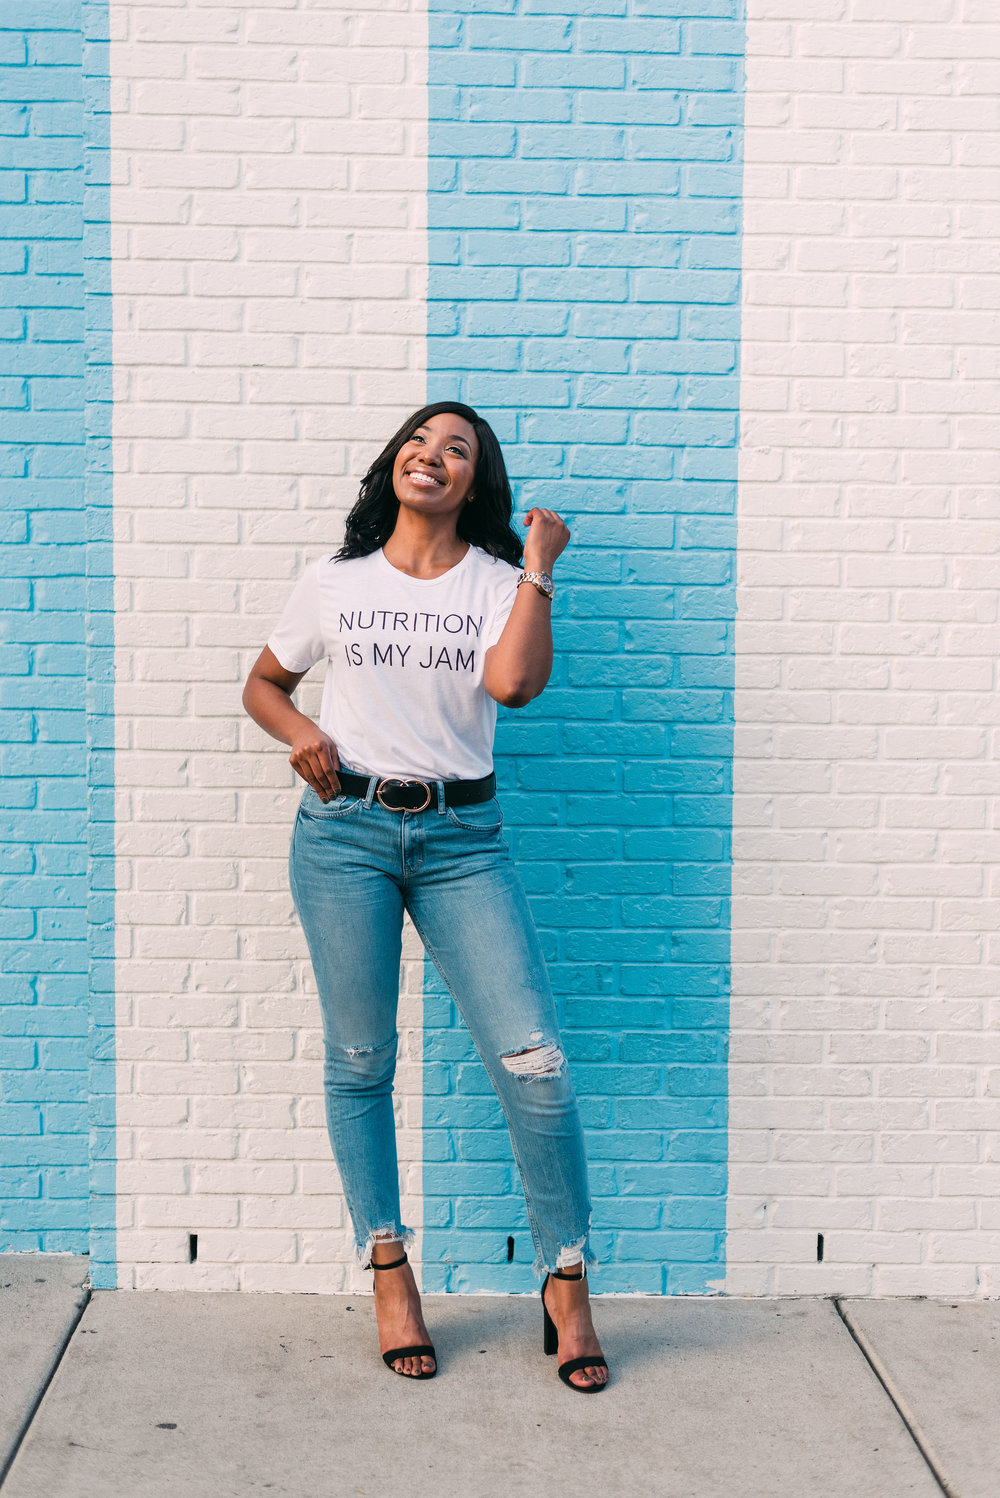 """hi, Friends! - I'm Kayla, Memphis native living in Nashville, TN. I earned my Bachelors degree in Nutrition and Food Science in 2014 from Middle Tennessee State University. After graduating, I started working as a nutrition educator for the WIC (women, infants, and children) program, and I absolutely loved it! After working for a year, I realized that my job didn't offer much opportunity for career advancement. As passionate and intrigued as I was about nutrition and food science, I knew I wanted to delve much deeper in the field. So, I decided to go back to school and complete the Didactic Program in Dietetics. I just finished May 2018 (yay me!!!)I was recently admitted into the University of Alabama at Birmingham's Dietitian Education Program (GOOOOOO BLAZERS!!!) to continue my journey of becoming a Registered Dietitian - a journey that has been long and, sometimes, difficult. But, I've learned that when you have a dream, no matter how many """"no's"""" you hear, no matter how much opposition you face, there is still an opportunity for an amazing """"yes"""" that turns out to be greater than what you imagined.I am passionate about nutrition and food science, and I want people to know that there's more to eating healthy than salads and smoothies. The things we consume affect our bodies in good and bad ways, having a significant effect on how we feel. If we really pay attention to our bodies, we can see a major connection between food and our mood. My goal for NourishMeKay is to show you that eating healthy doesn't have to be boring, tasteless, or expensive! I'll share fact-based information, tips, and even recipes to help you adopt a healthier lifestyle."""